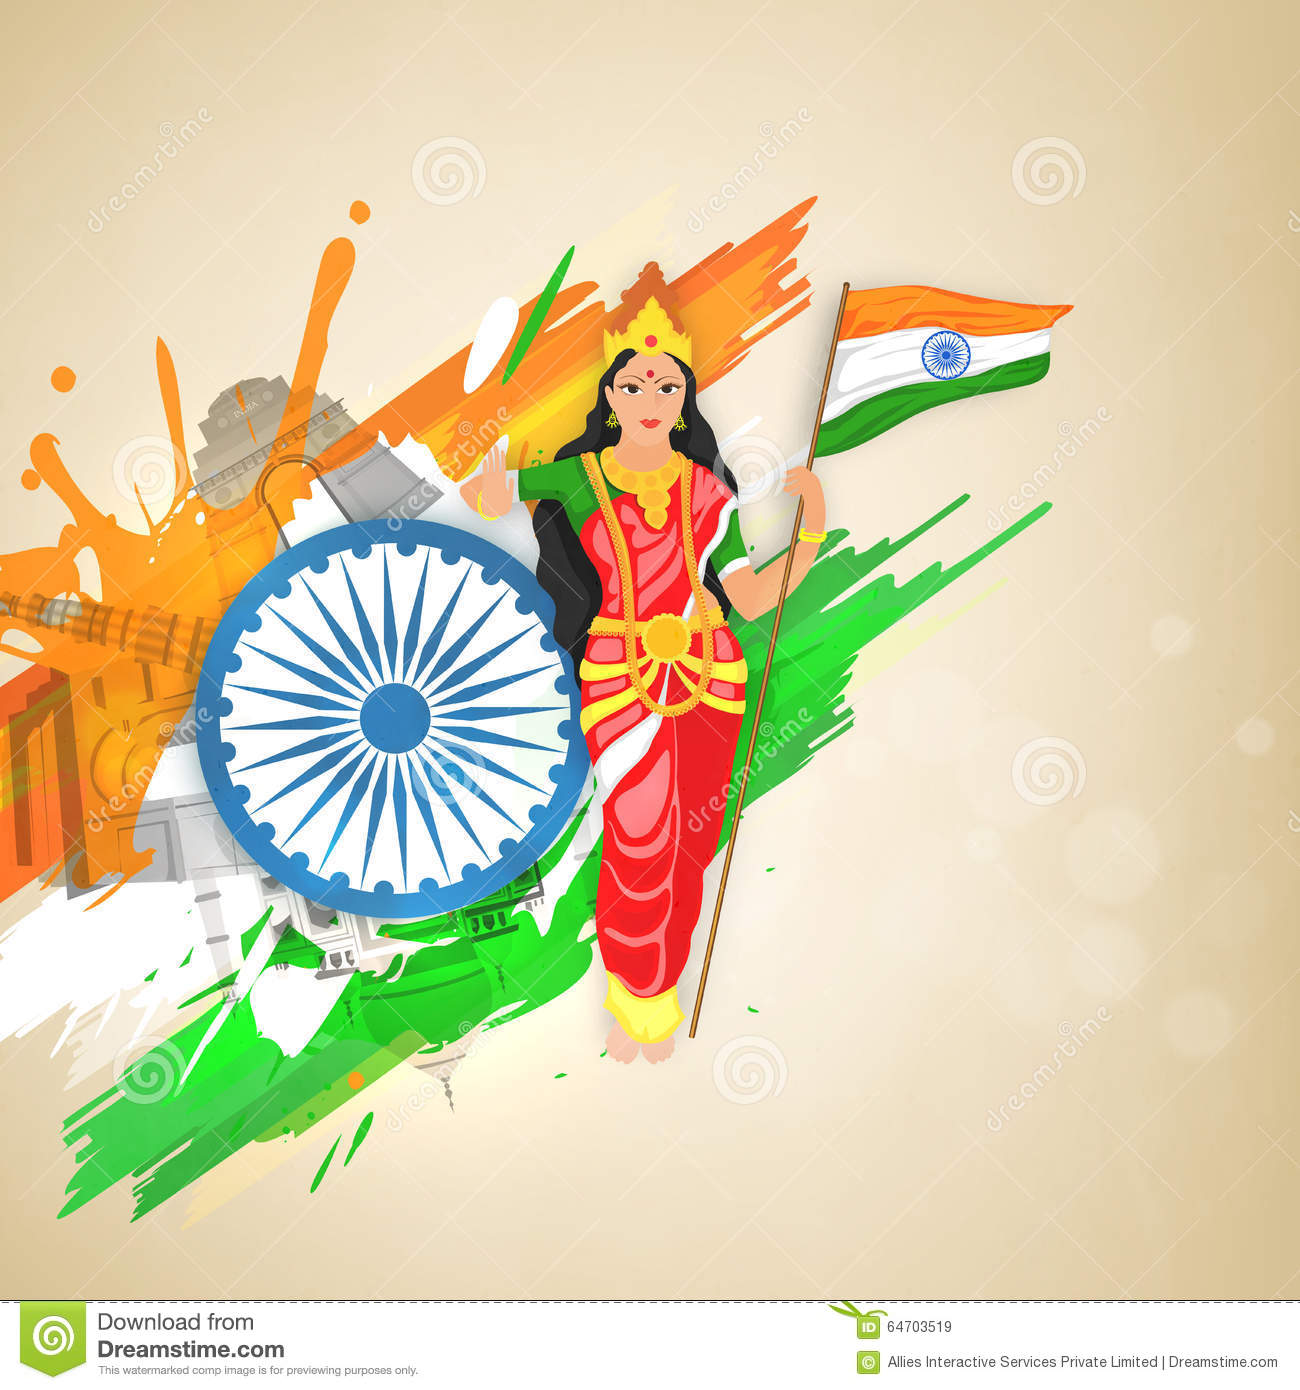 Image result for Image of India with Bharat Mata.